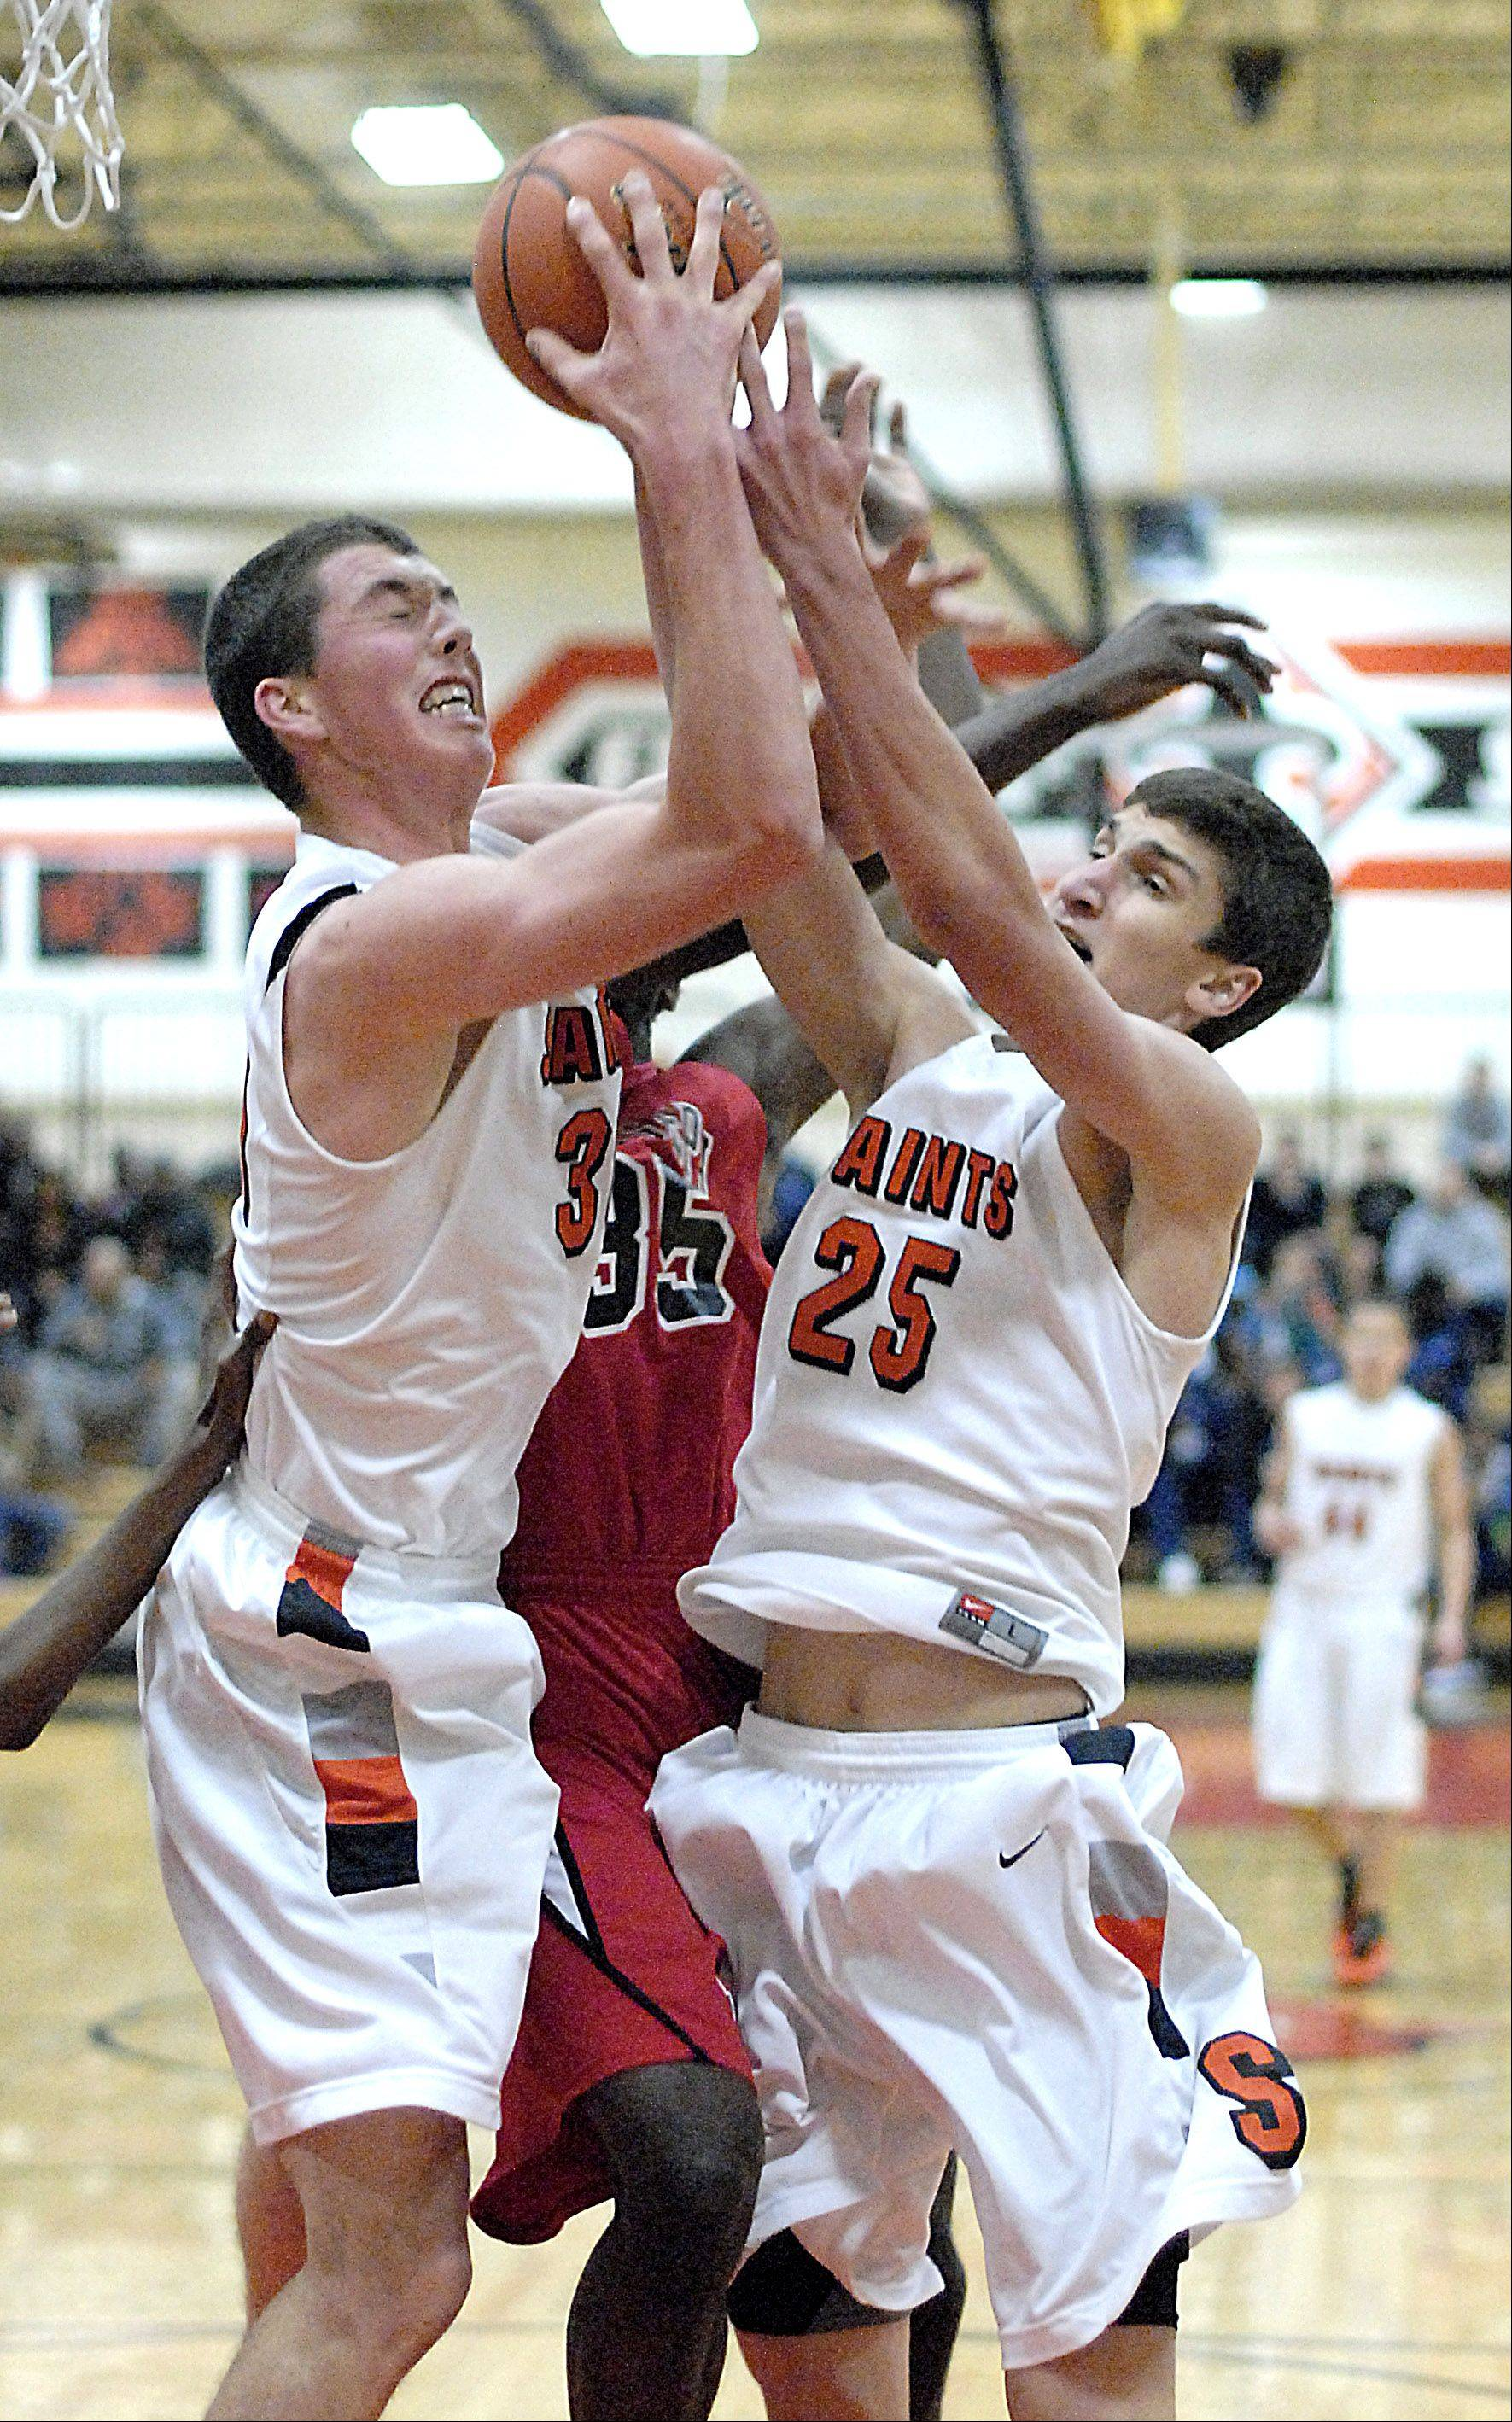 St. Charles East�s David Mason and Dan Wilkerson sandwich St. Joseph�s Karriem Simmons as they fight for a rebound in the first quarter on Friday, November 23.